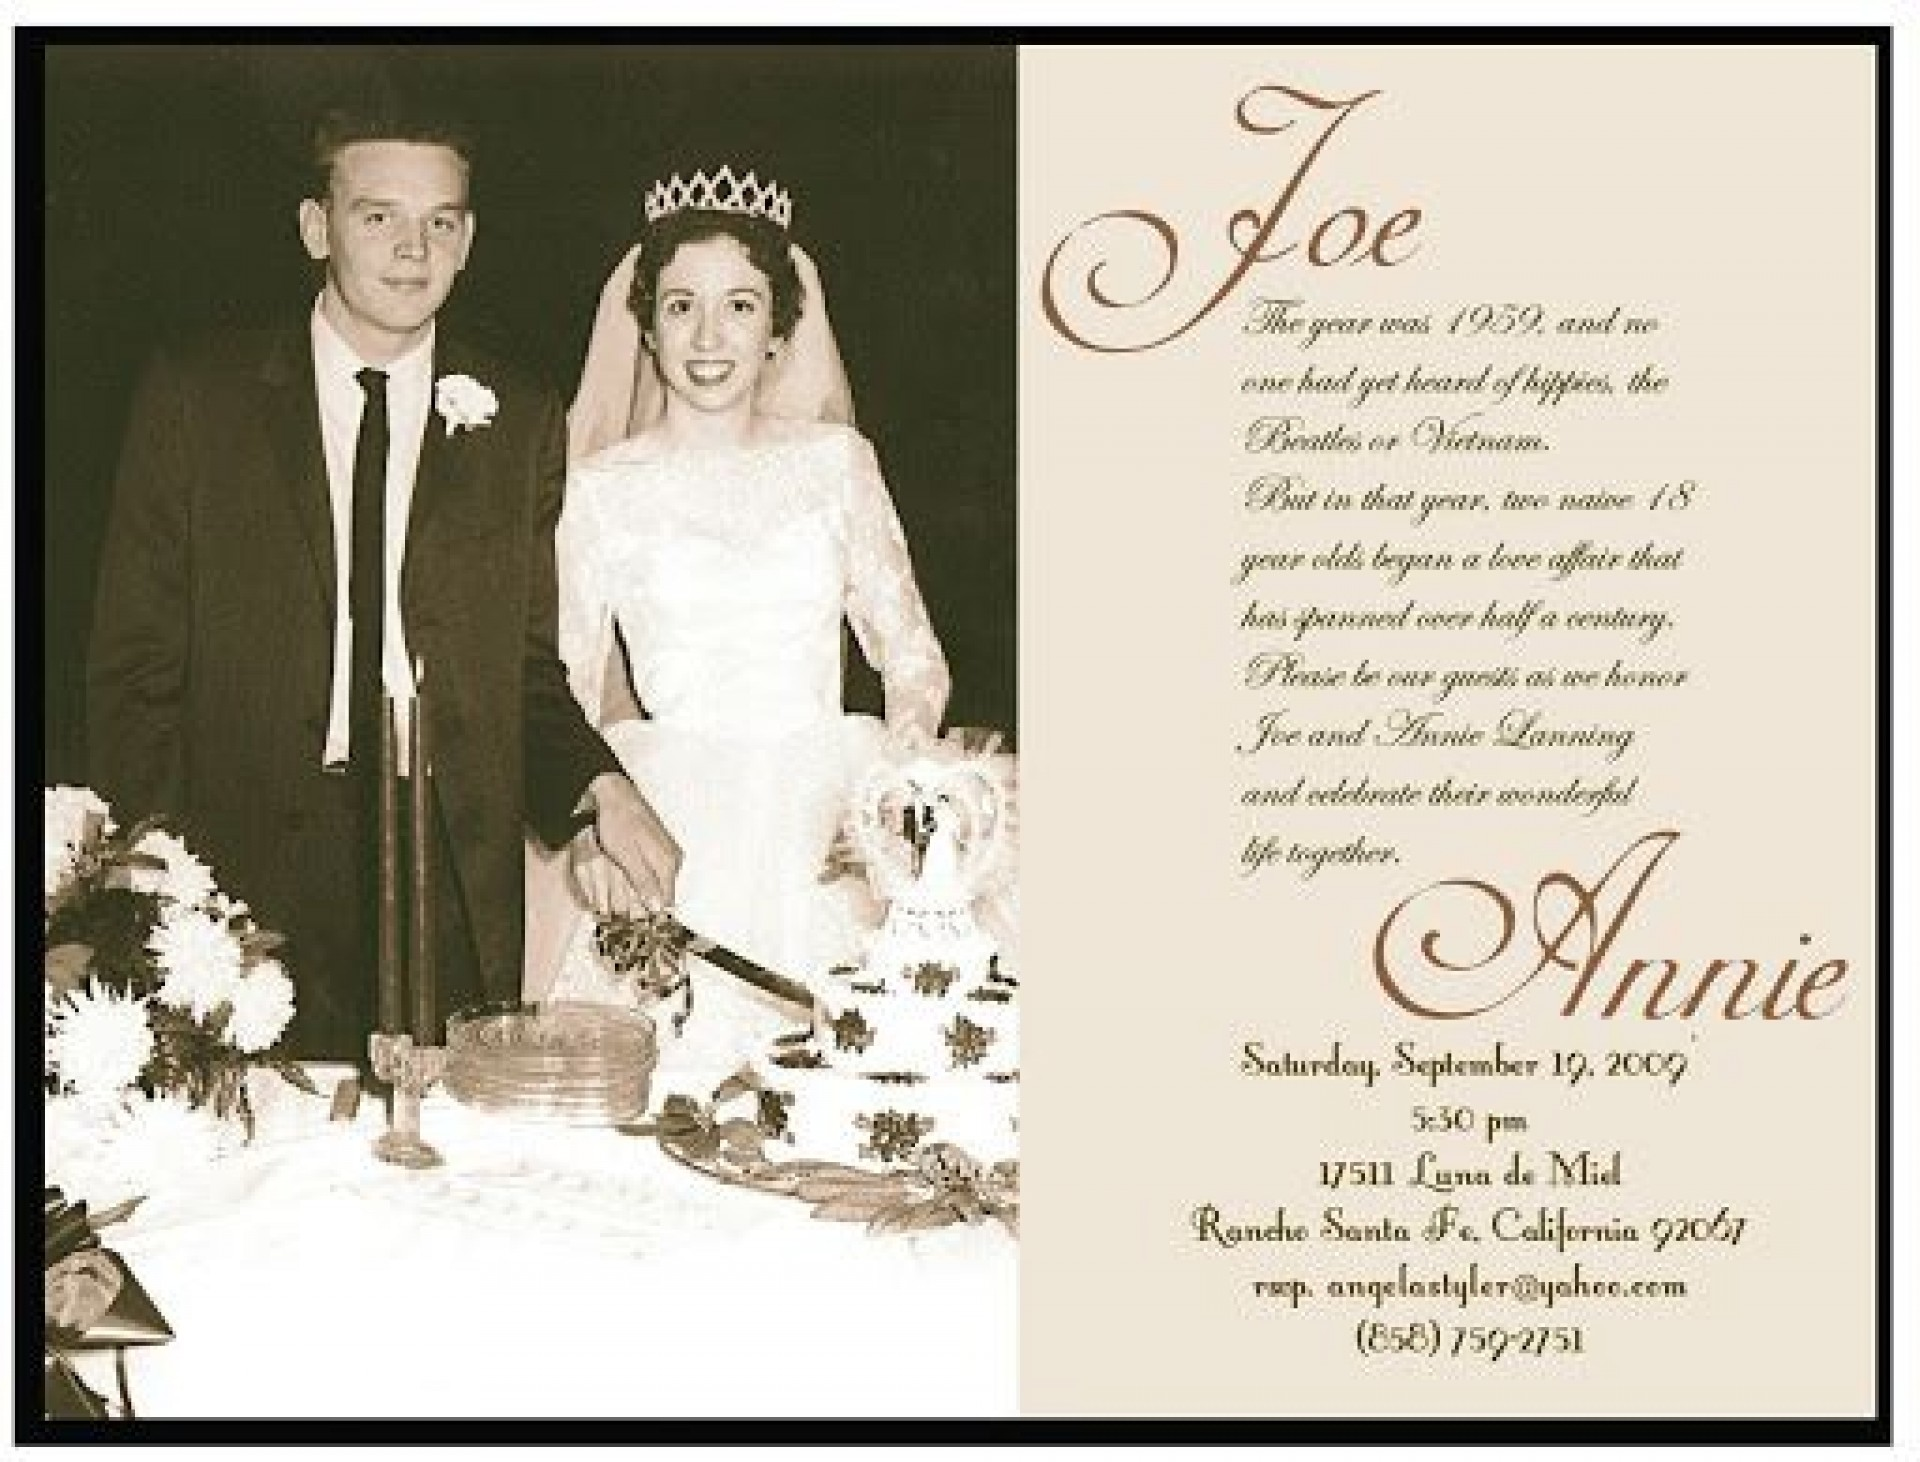 009 Wonderful 50th Wedding Anniversary Invitation Template Concept  Templates Golden Uk Free Download1920